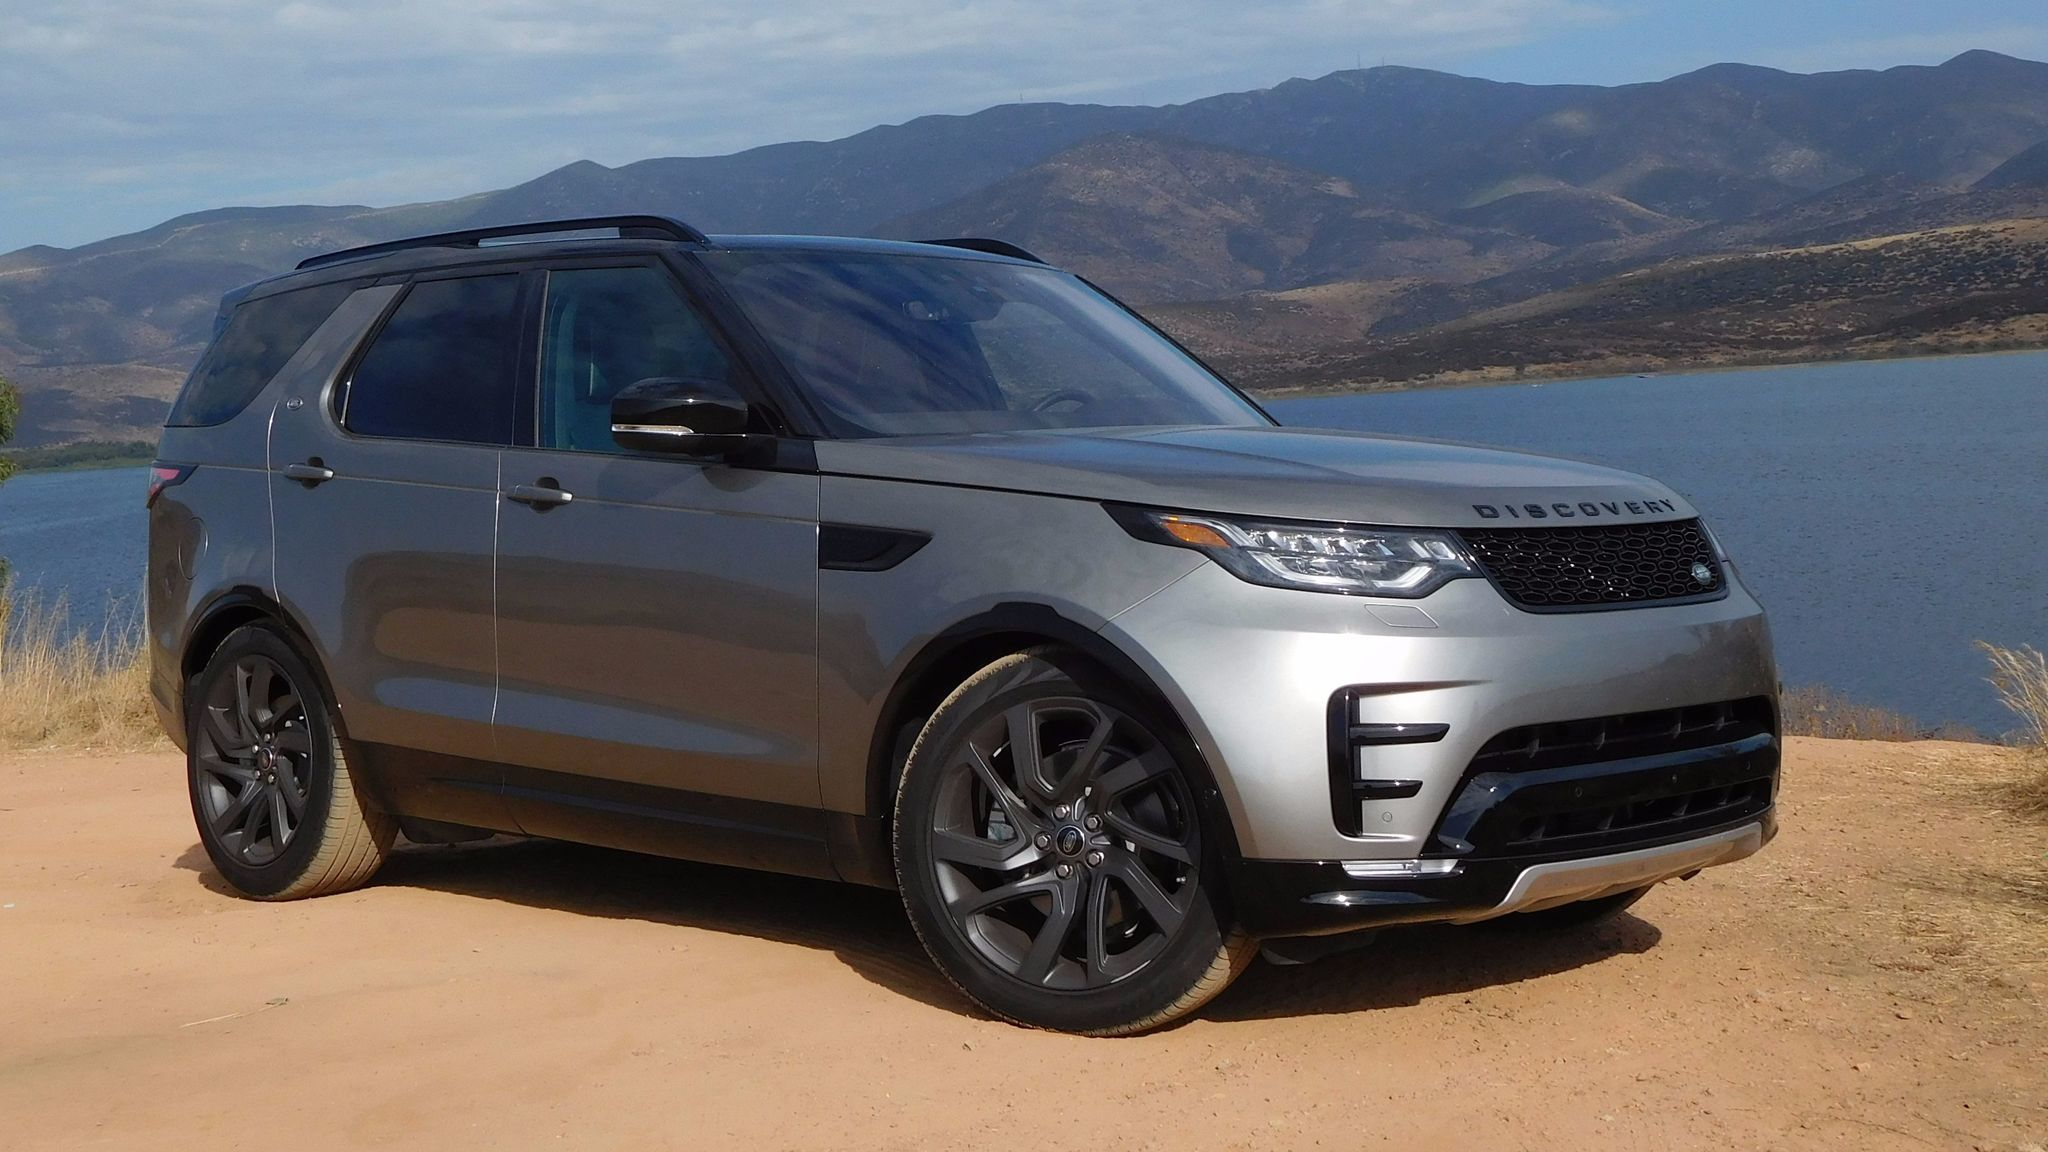 Land Rover Discovery Shockproof British luxury The San Diego